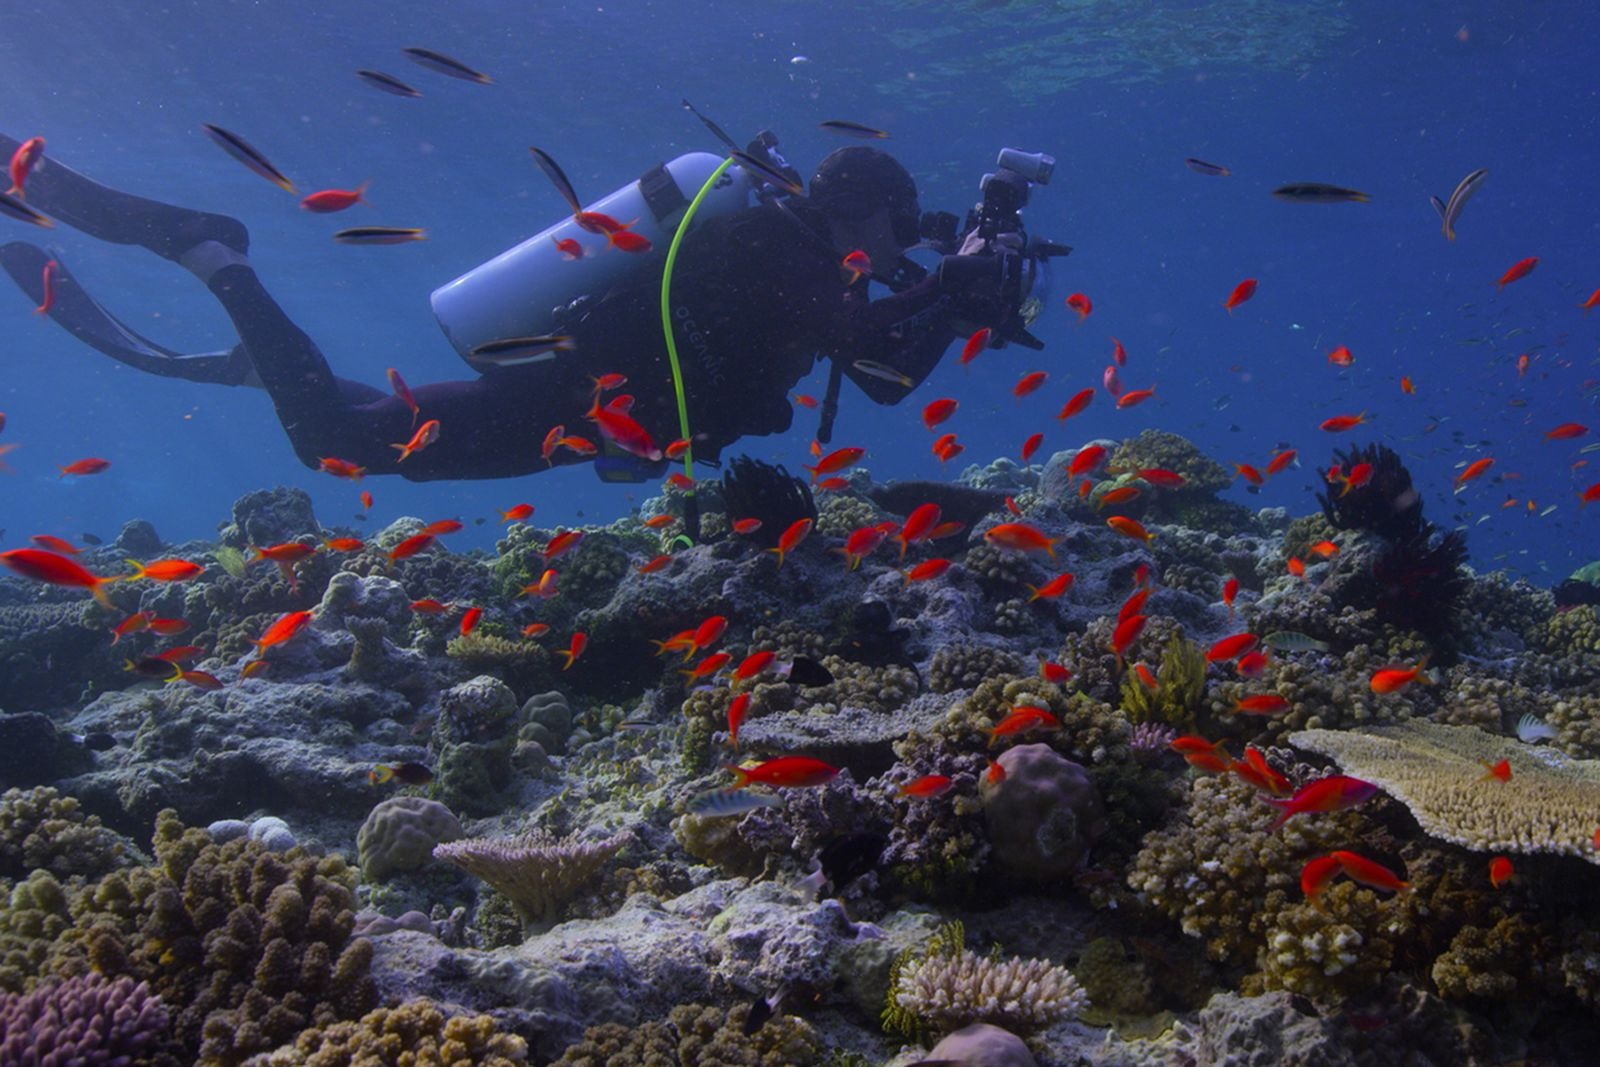 netflix documentaries life changing main Audrie & Daisy Chasing Coral Cowspiracy: The Sustainability Secret